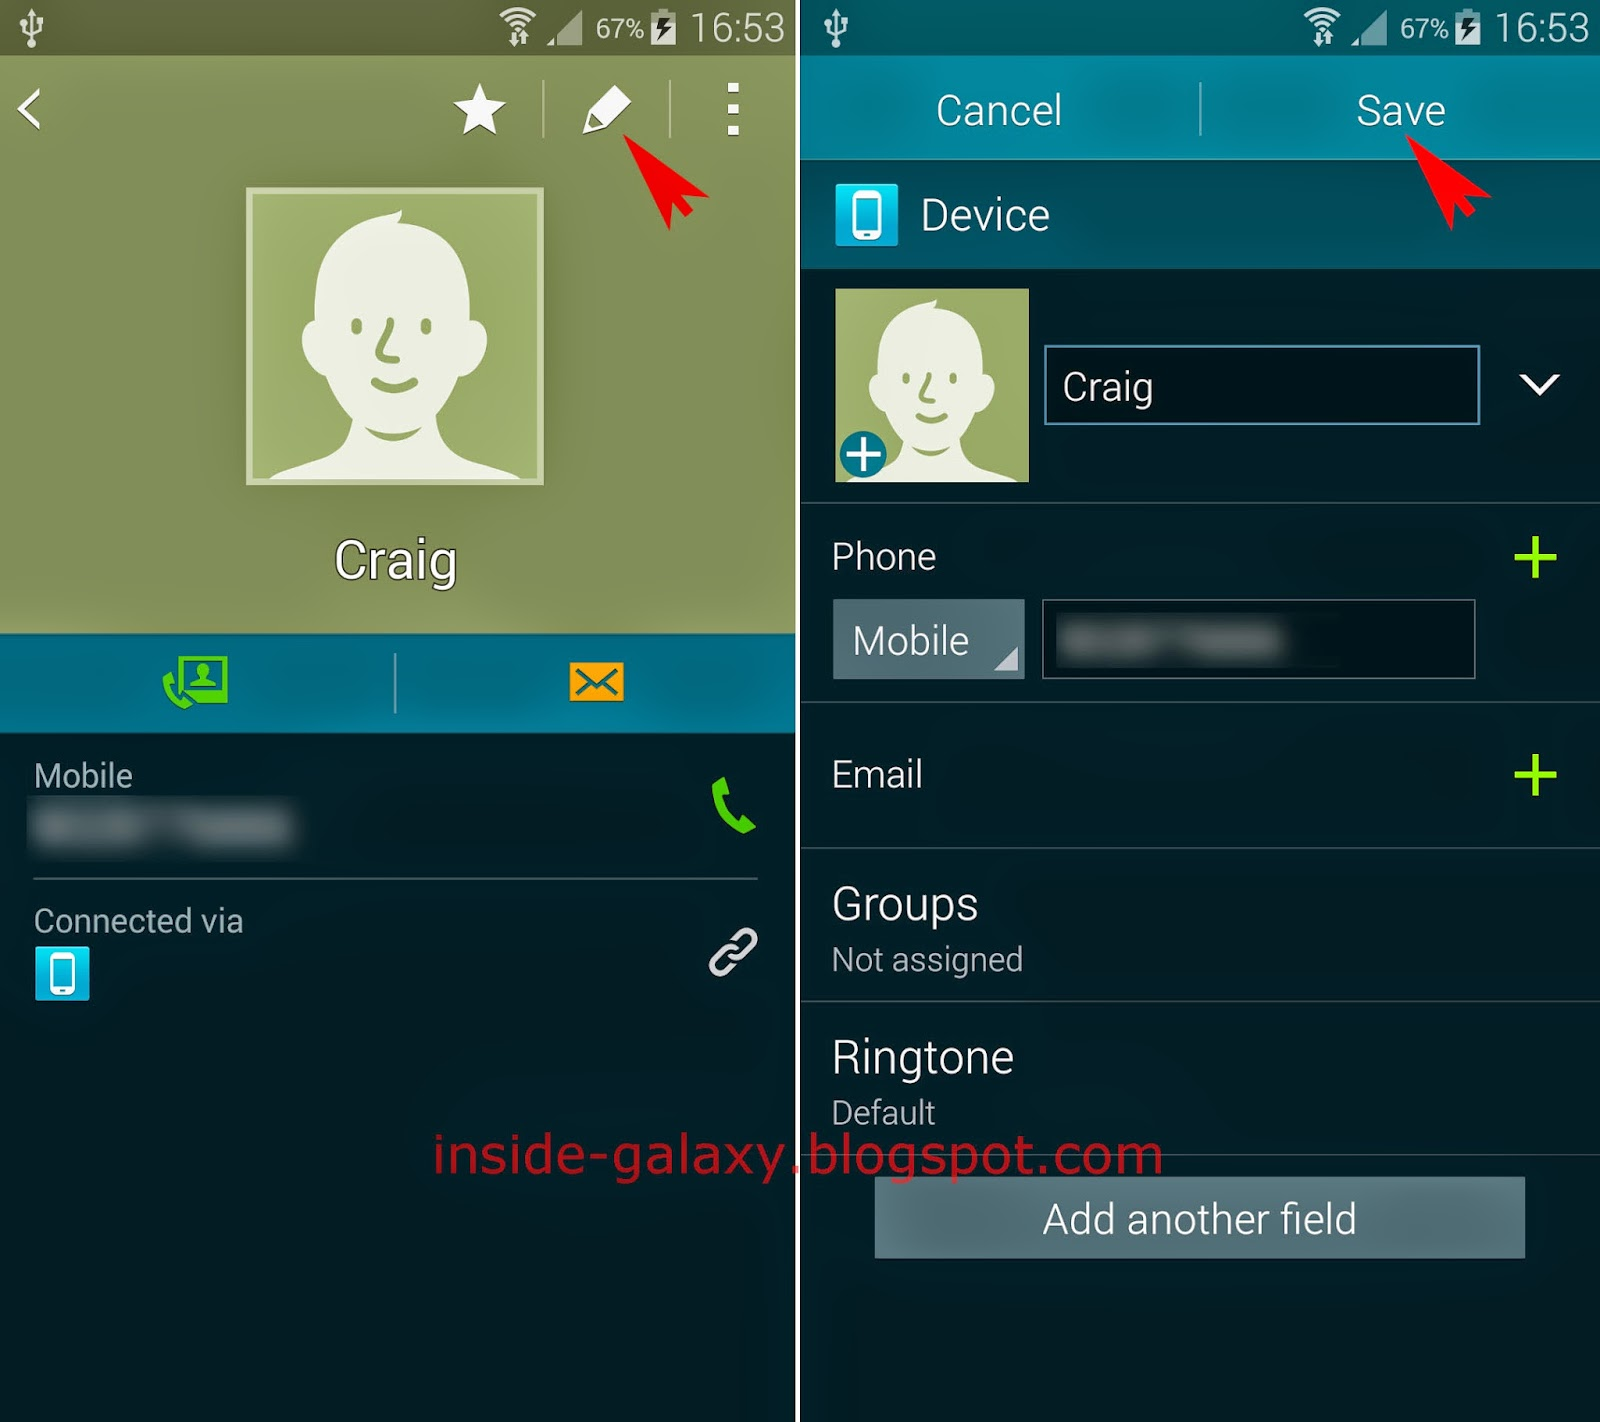 Samsung Galaxy S5: How To Edit Existing Contact In Android 442 Kitkat